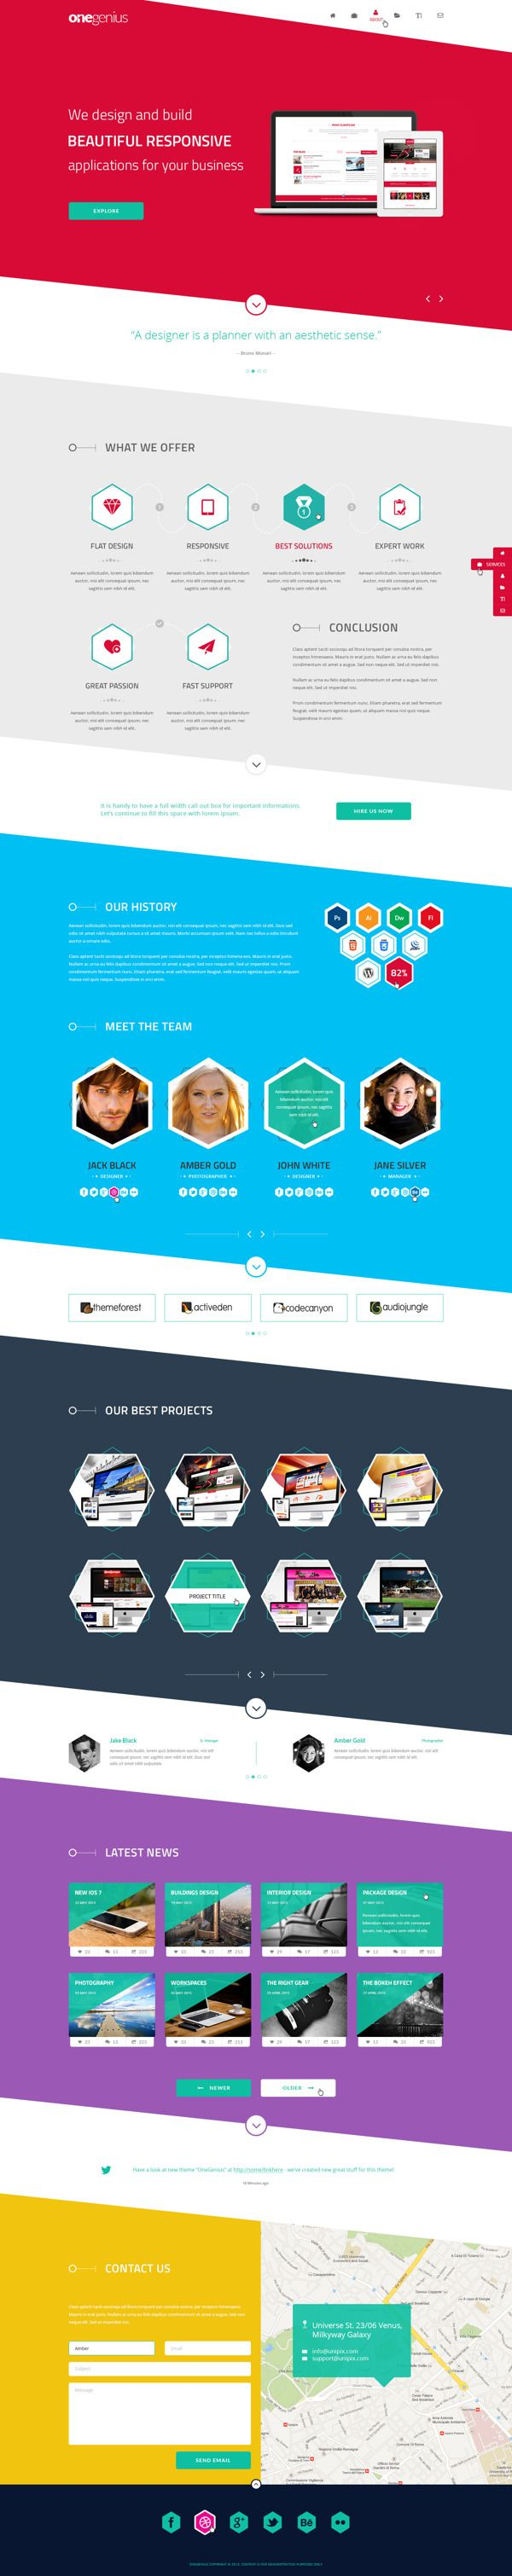 OneGenius - One Page Flat Portfolio PSD Template by Zizaza - design ocean , via Behance